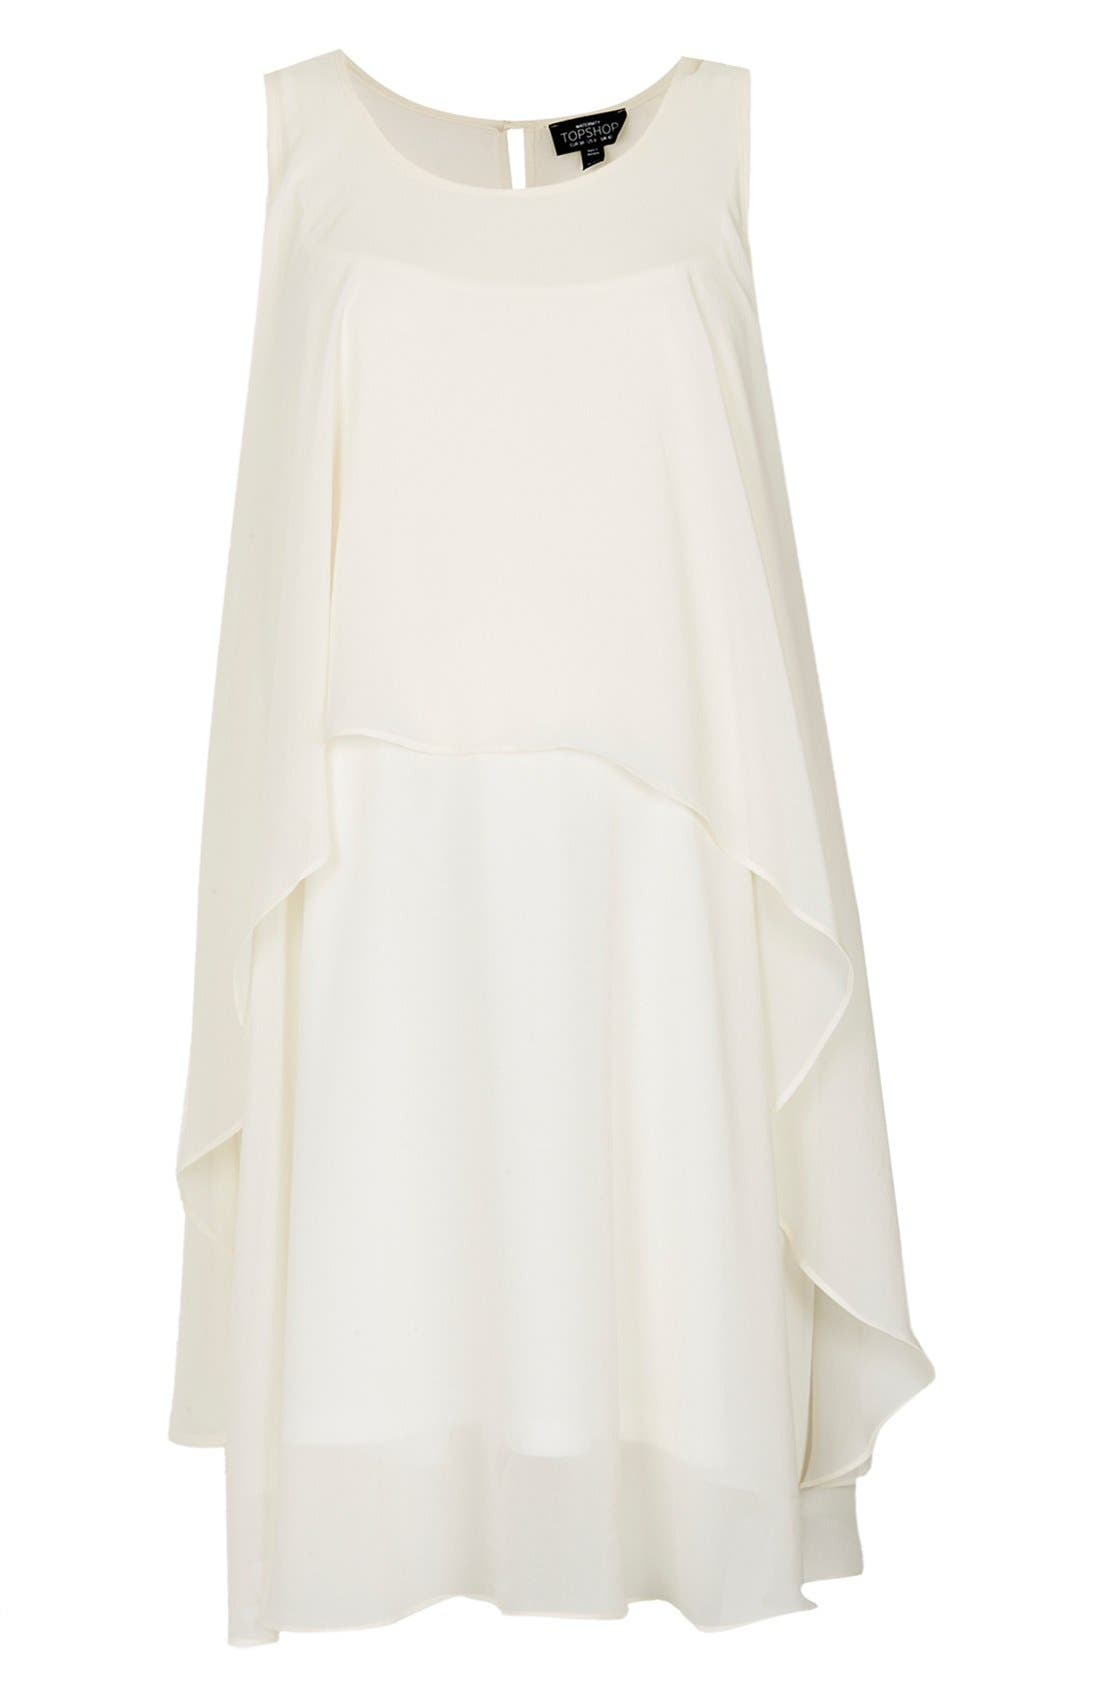 Alternate Image 1 Selected - Topshop Waterfall Trapeze Maternity Dress